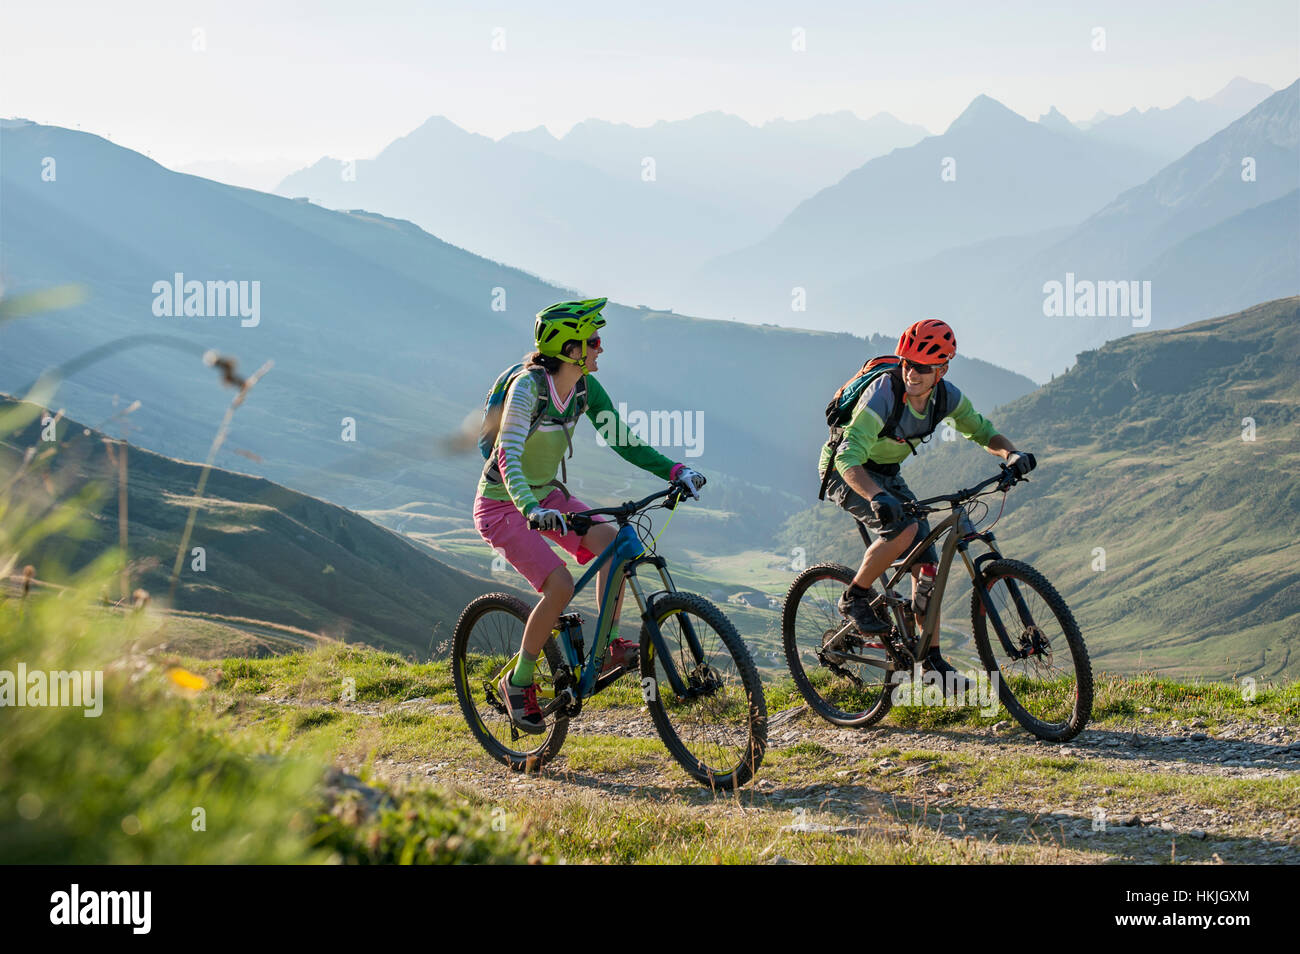 Two mountain biker friends riding on uphill, Zillertal, Tyrol, Austria - Stock Image